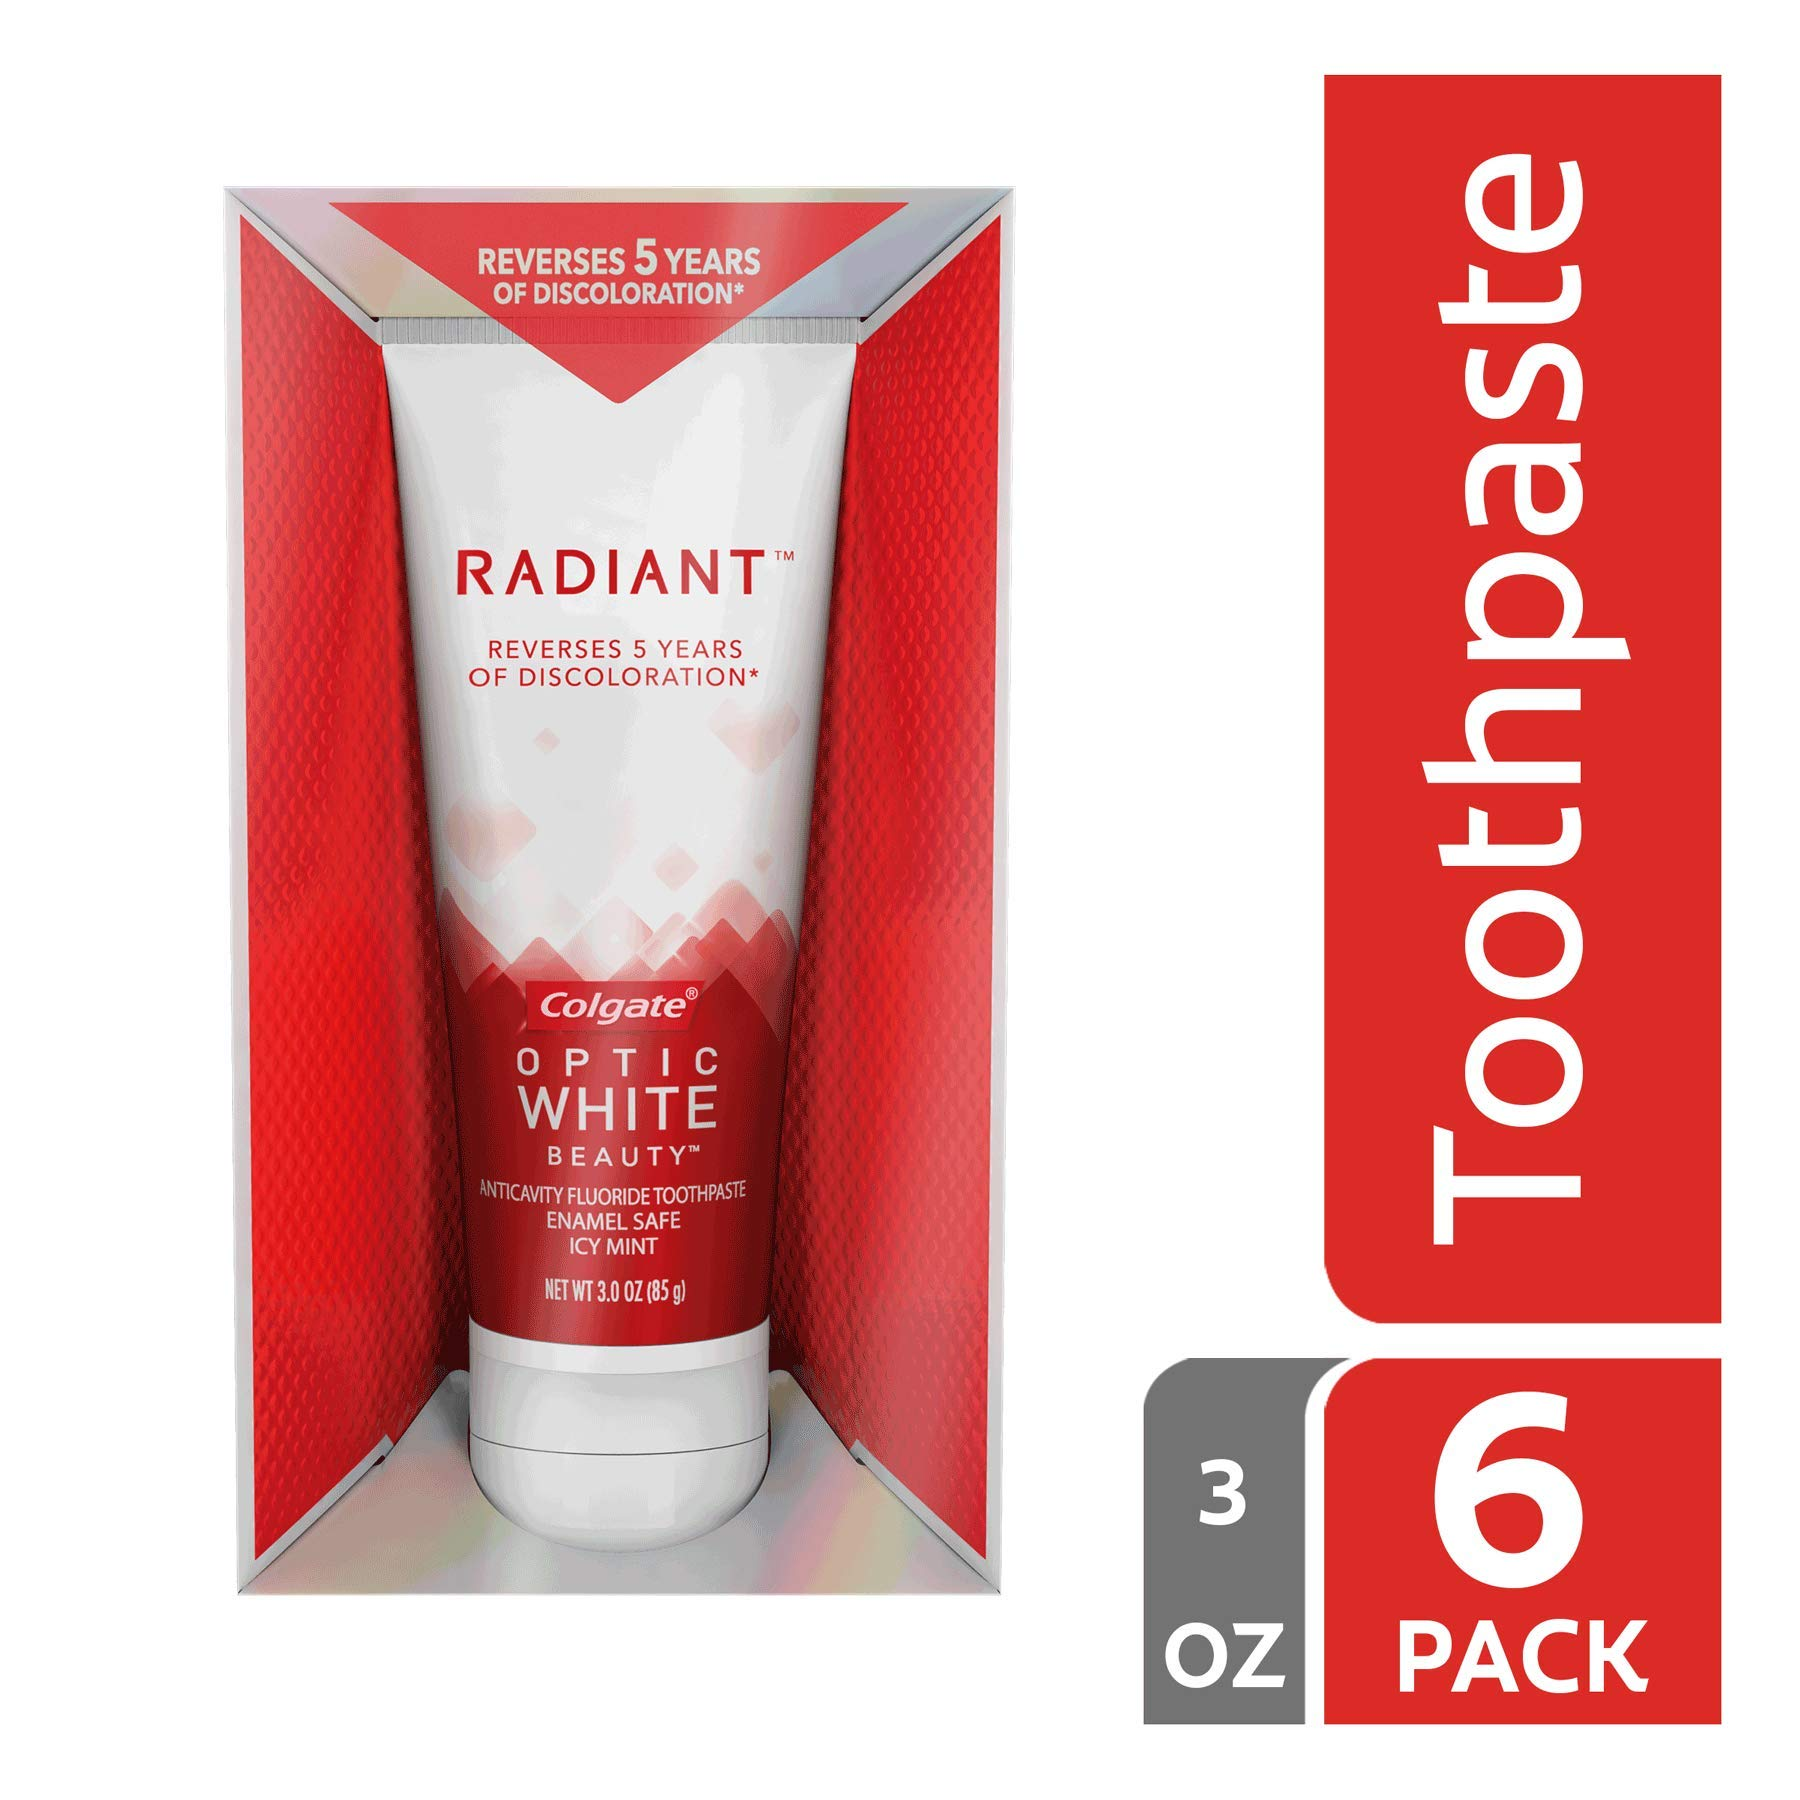 Colgate Optic White Radiant Whitening Toothpaste - 3 ounce (6 Pack)